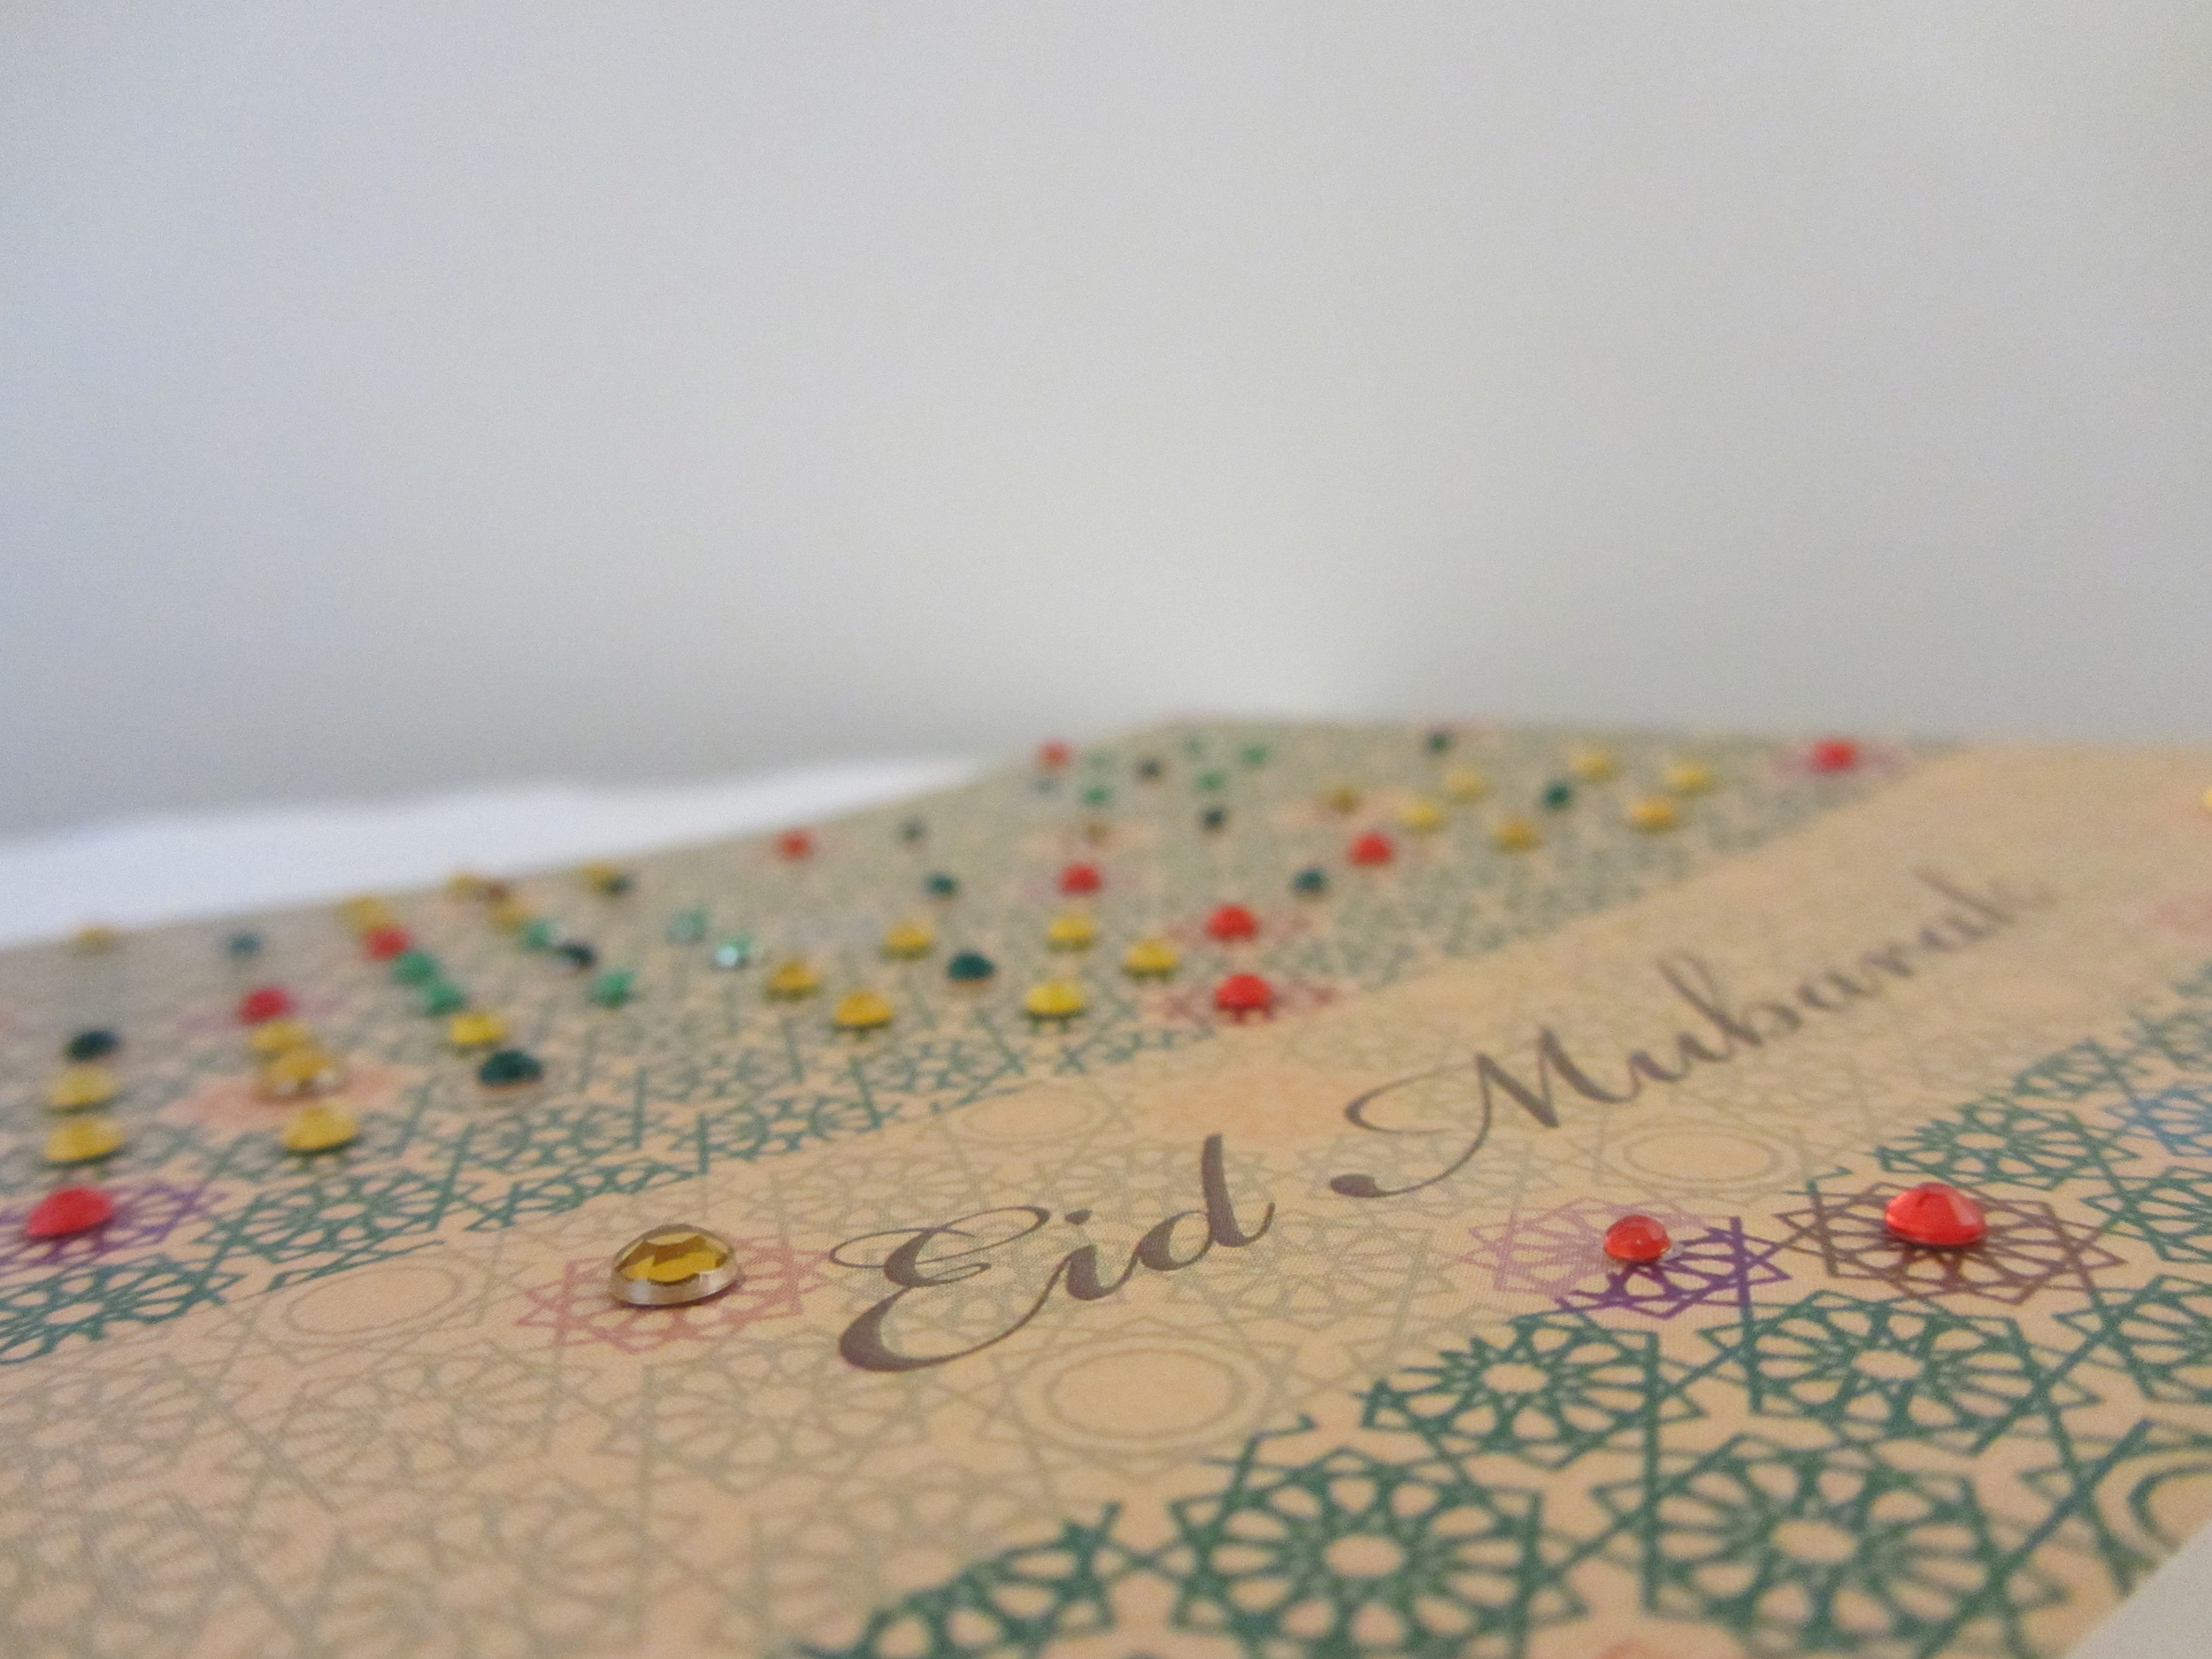 Crystal embellished 'Geometric Glamour' Eid greeting card by Ananya